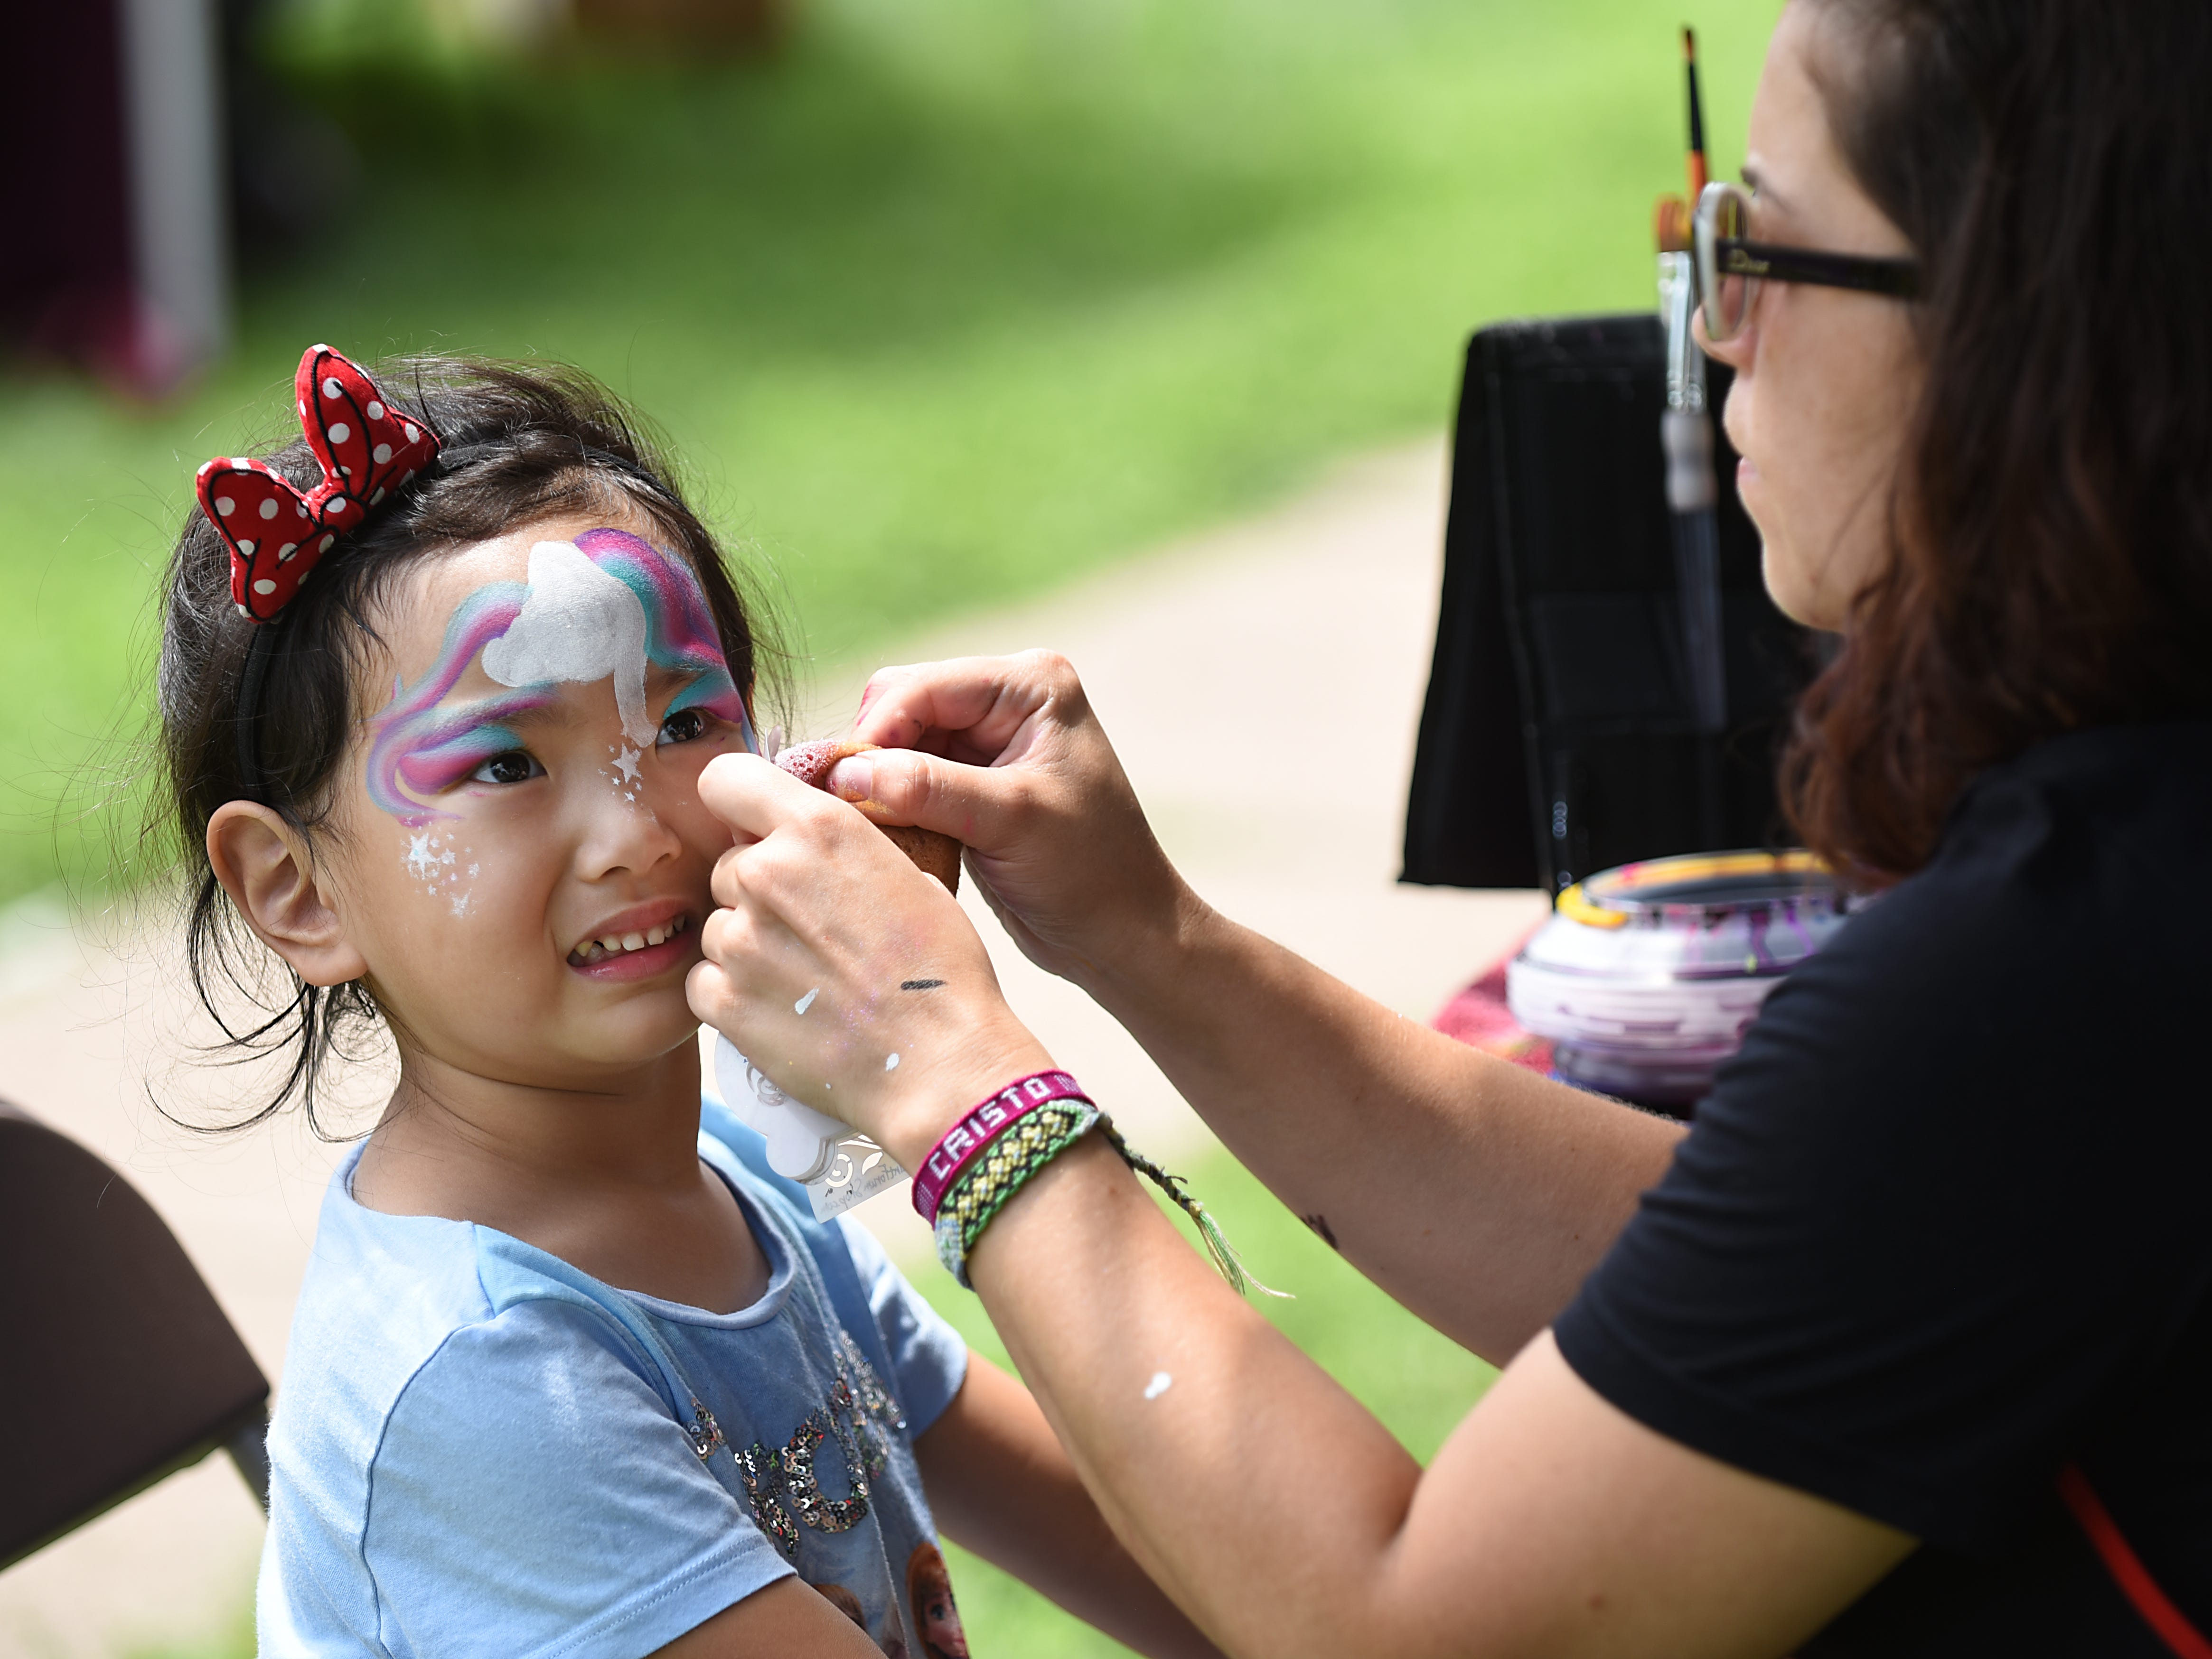 Kaitlyn Wang - four years old from Fort Lee, gets her face painted by Laura Hoyos at the Bergen Family Center tent in the 'Kid Zone' at the Summer-Fest & Sidewalk Sale in Englewood on Saturday July 28, 2018.